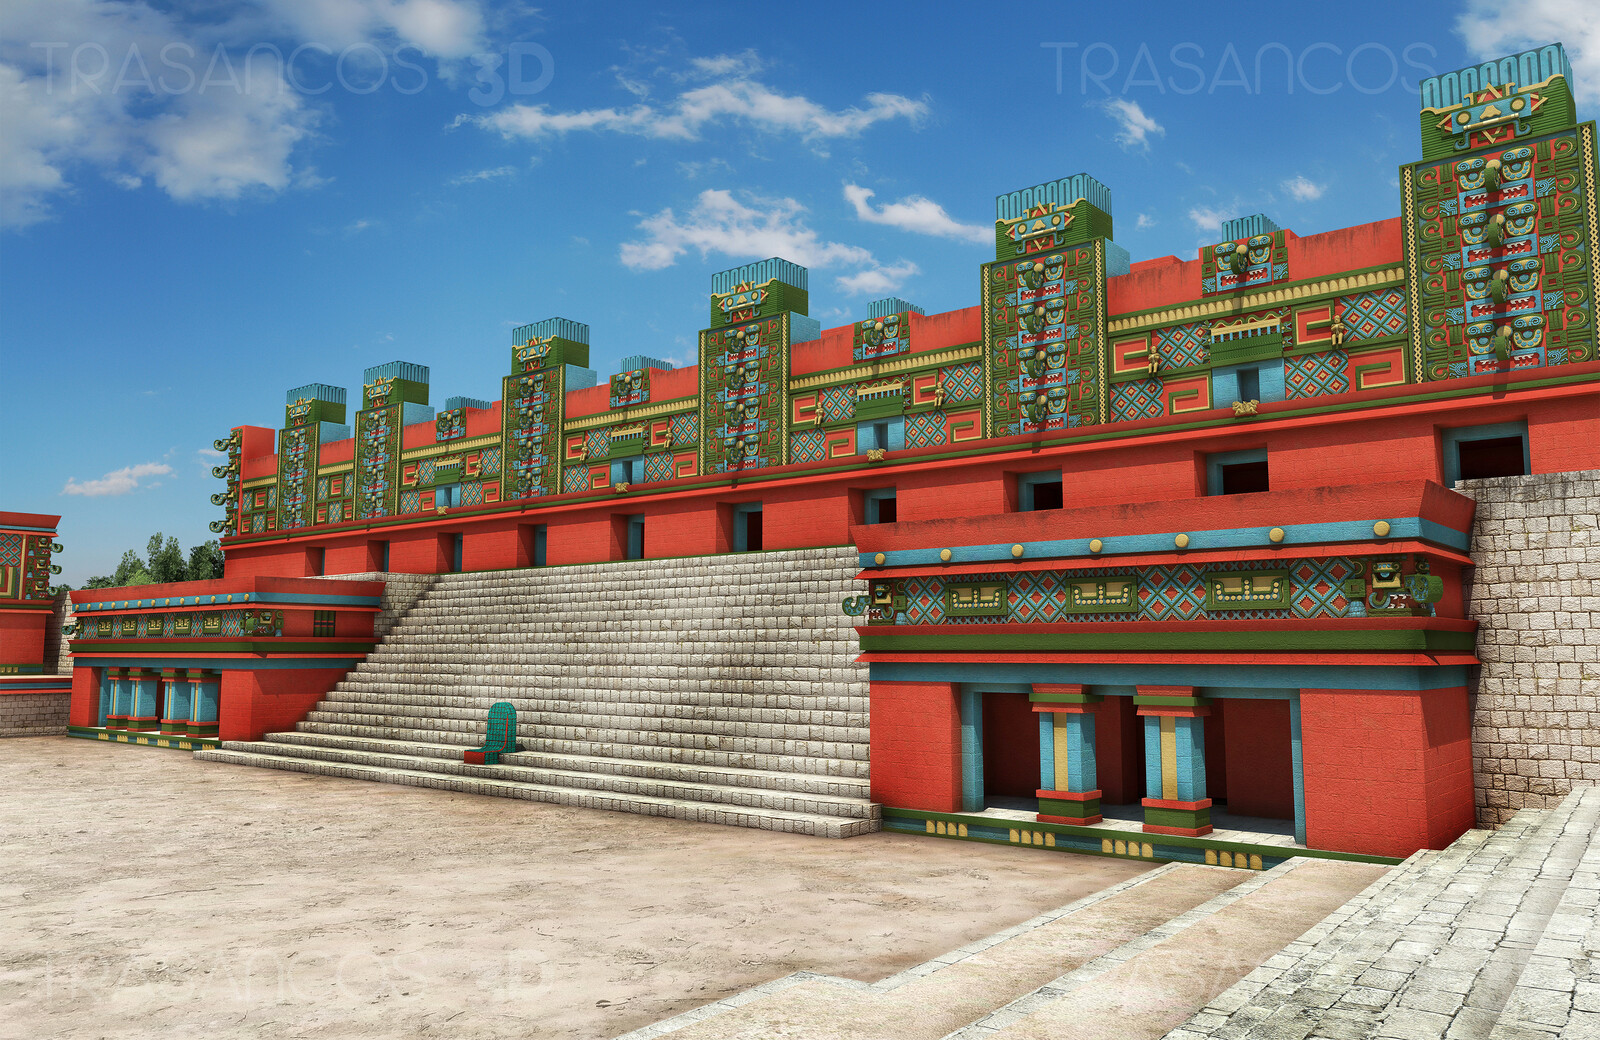 Reconstruction of the Nunnery Quadrangle in Uxmal. Modeled in collaboration with: - Diego Blanco